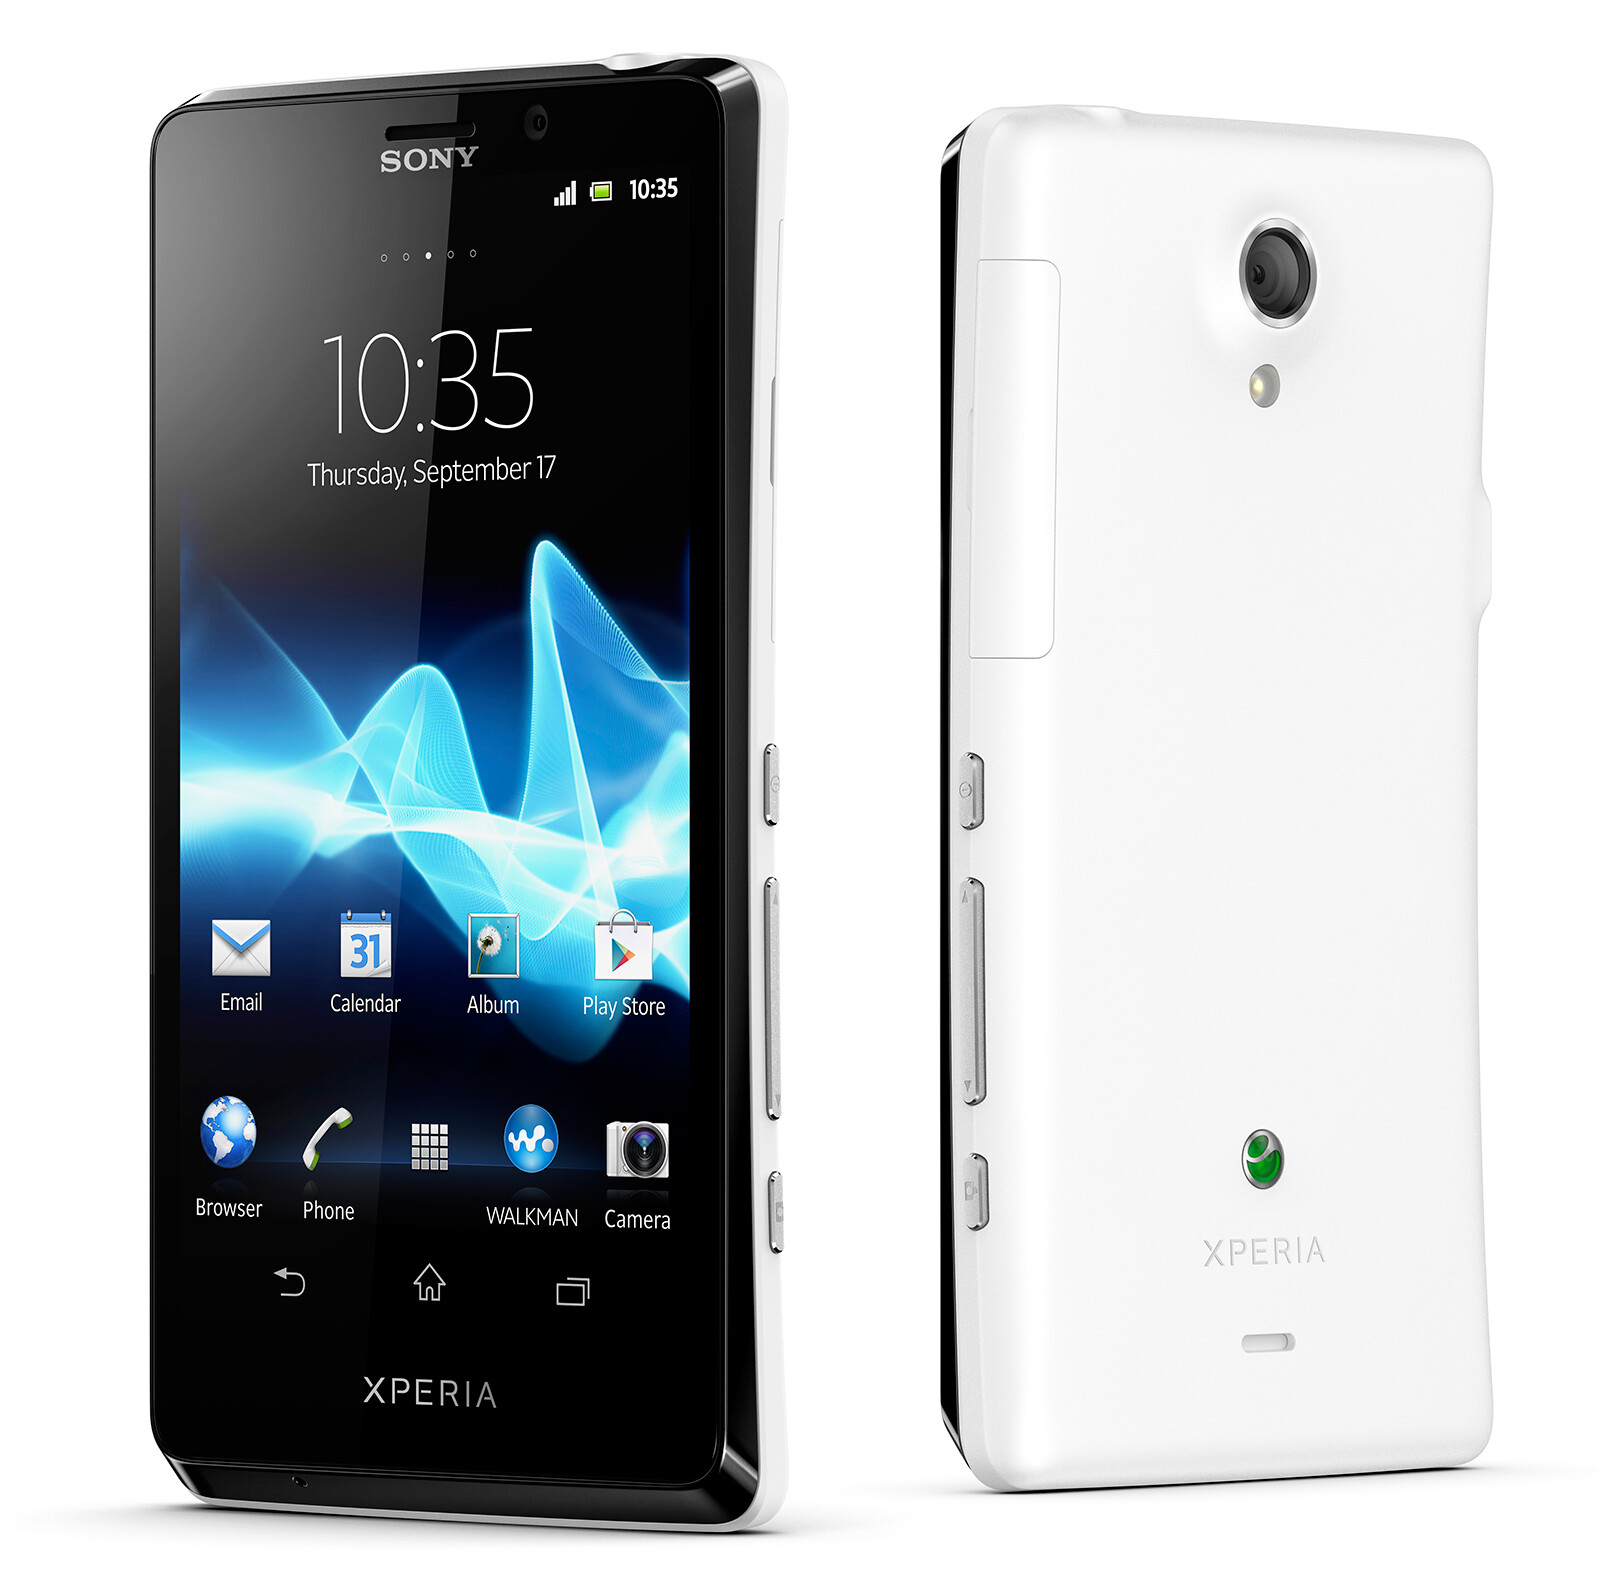 Sony Xperia T Featured in Best Multimedia